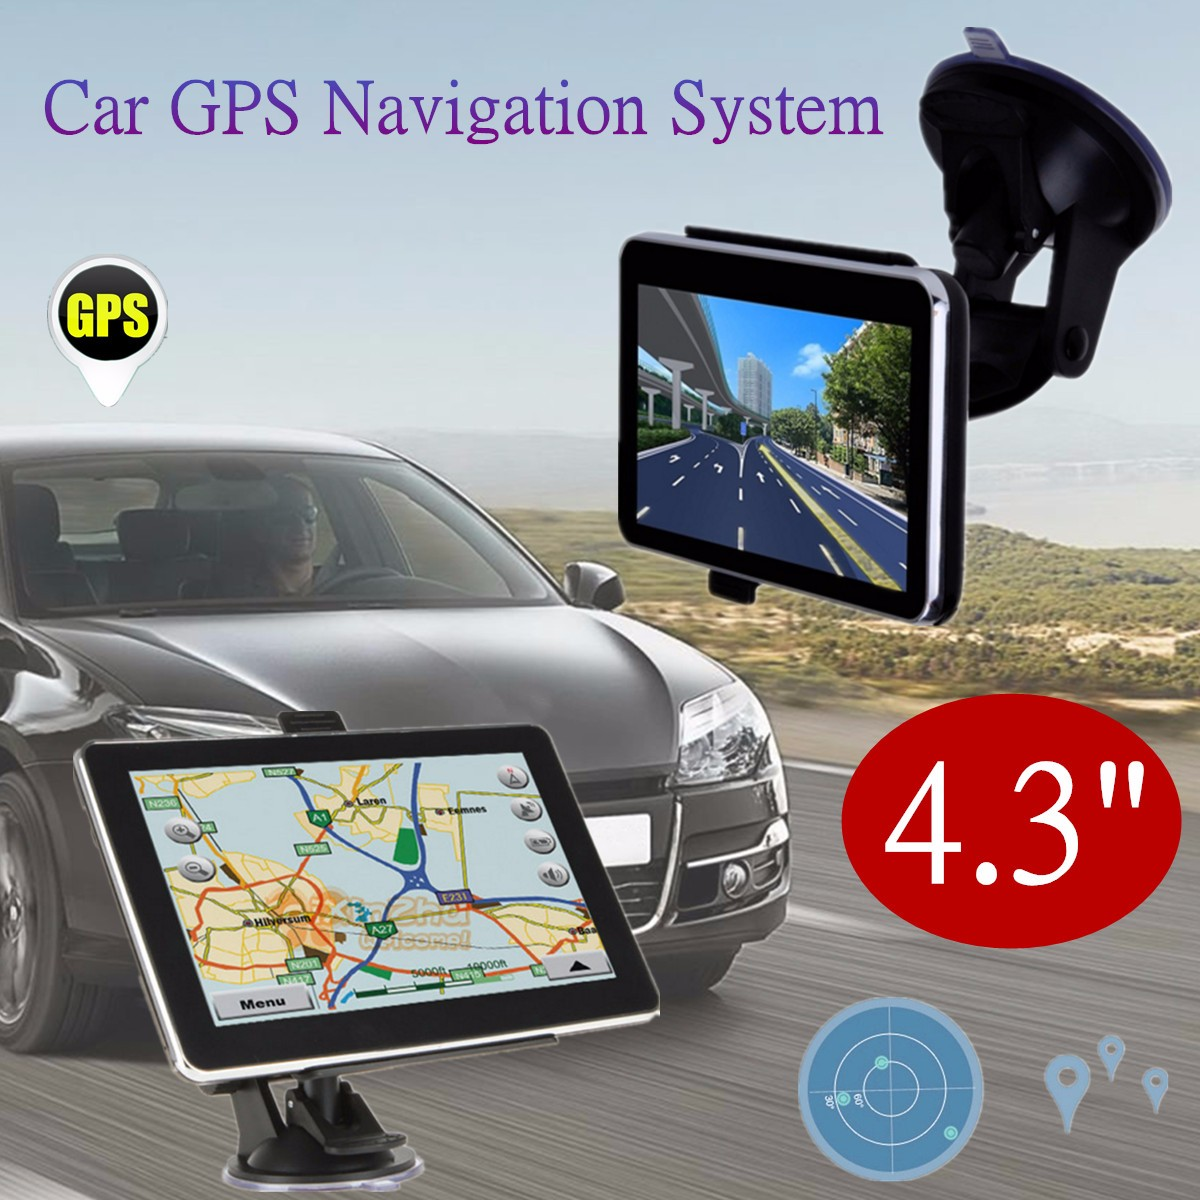 4.3 inch Car GPS Navigation 8GB MP3/MP4 Player Automobile Navigator FM Radio Europe & UK Free Map Vehicle gps Truck Map Sat Nav 4 3 inch car gps sat nav voice navigation 8gb fm mp3 mp4 ebook free uk eu au nz maps update